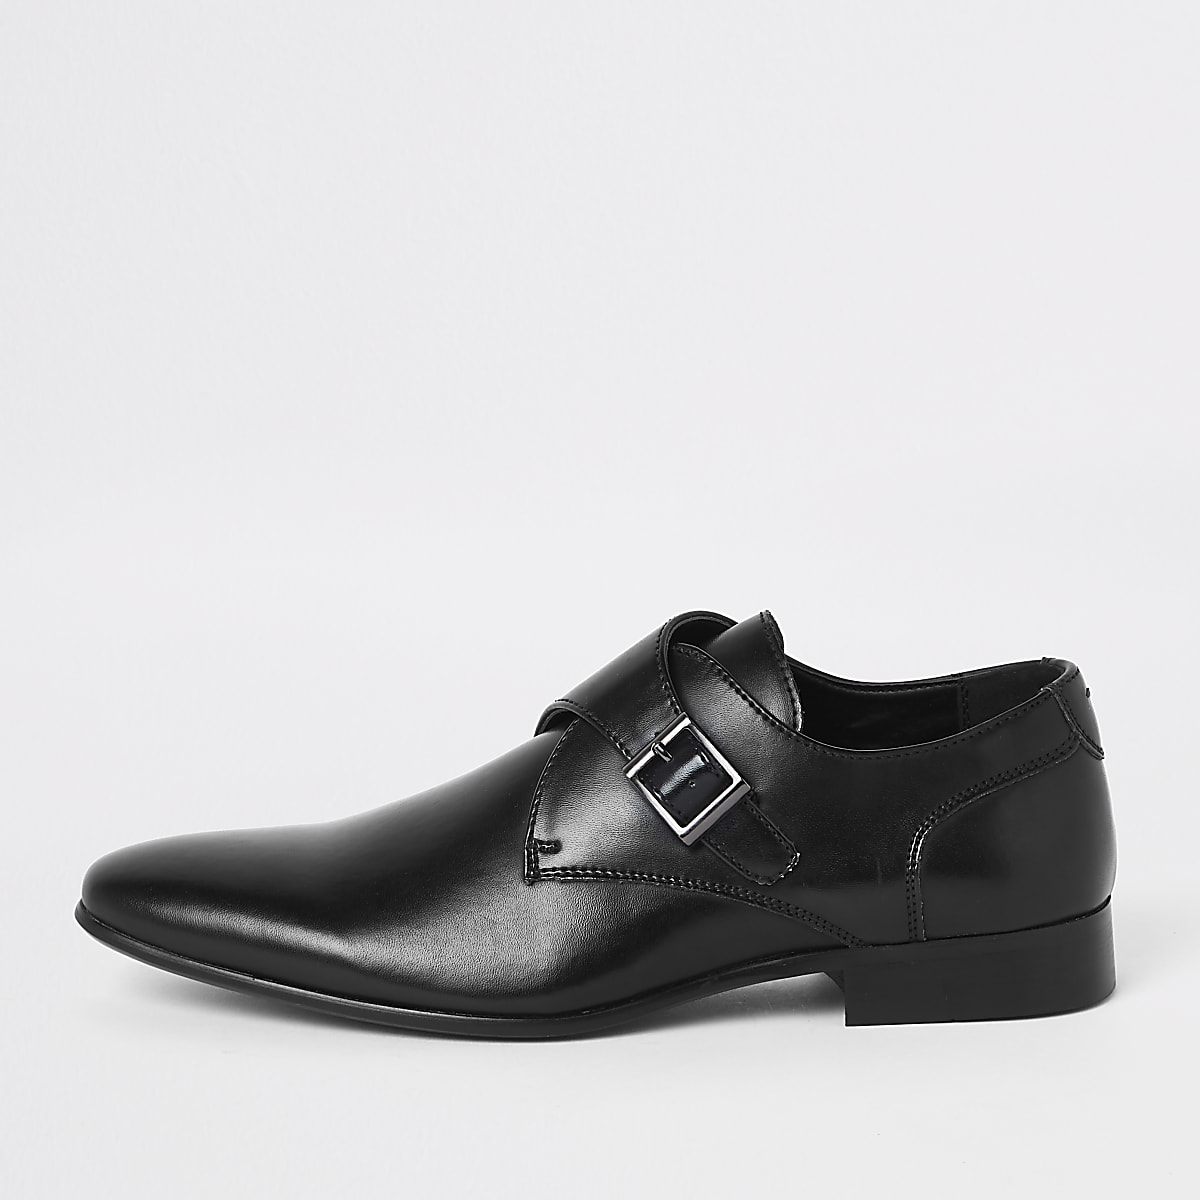 66e69a3f6b45a Black monk strap shoes